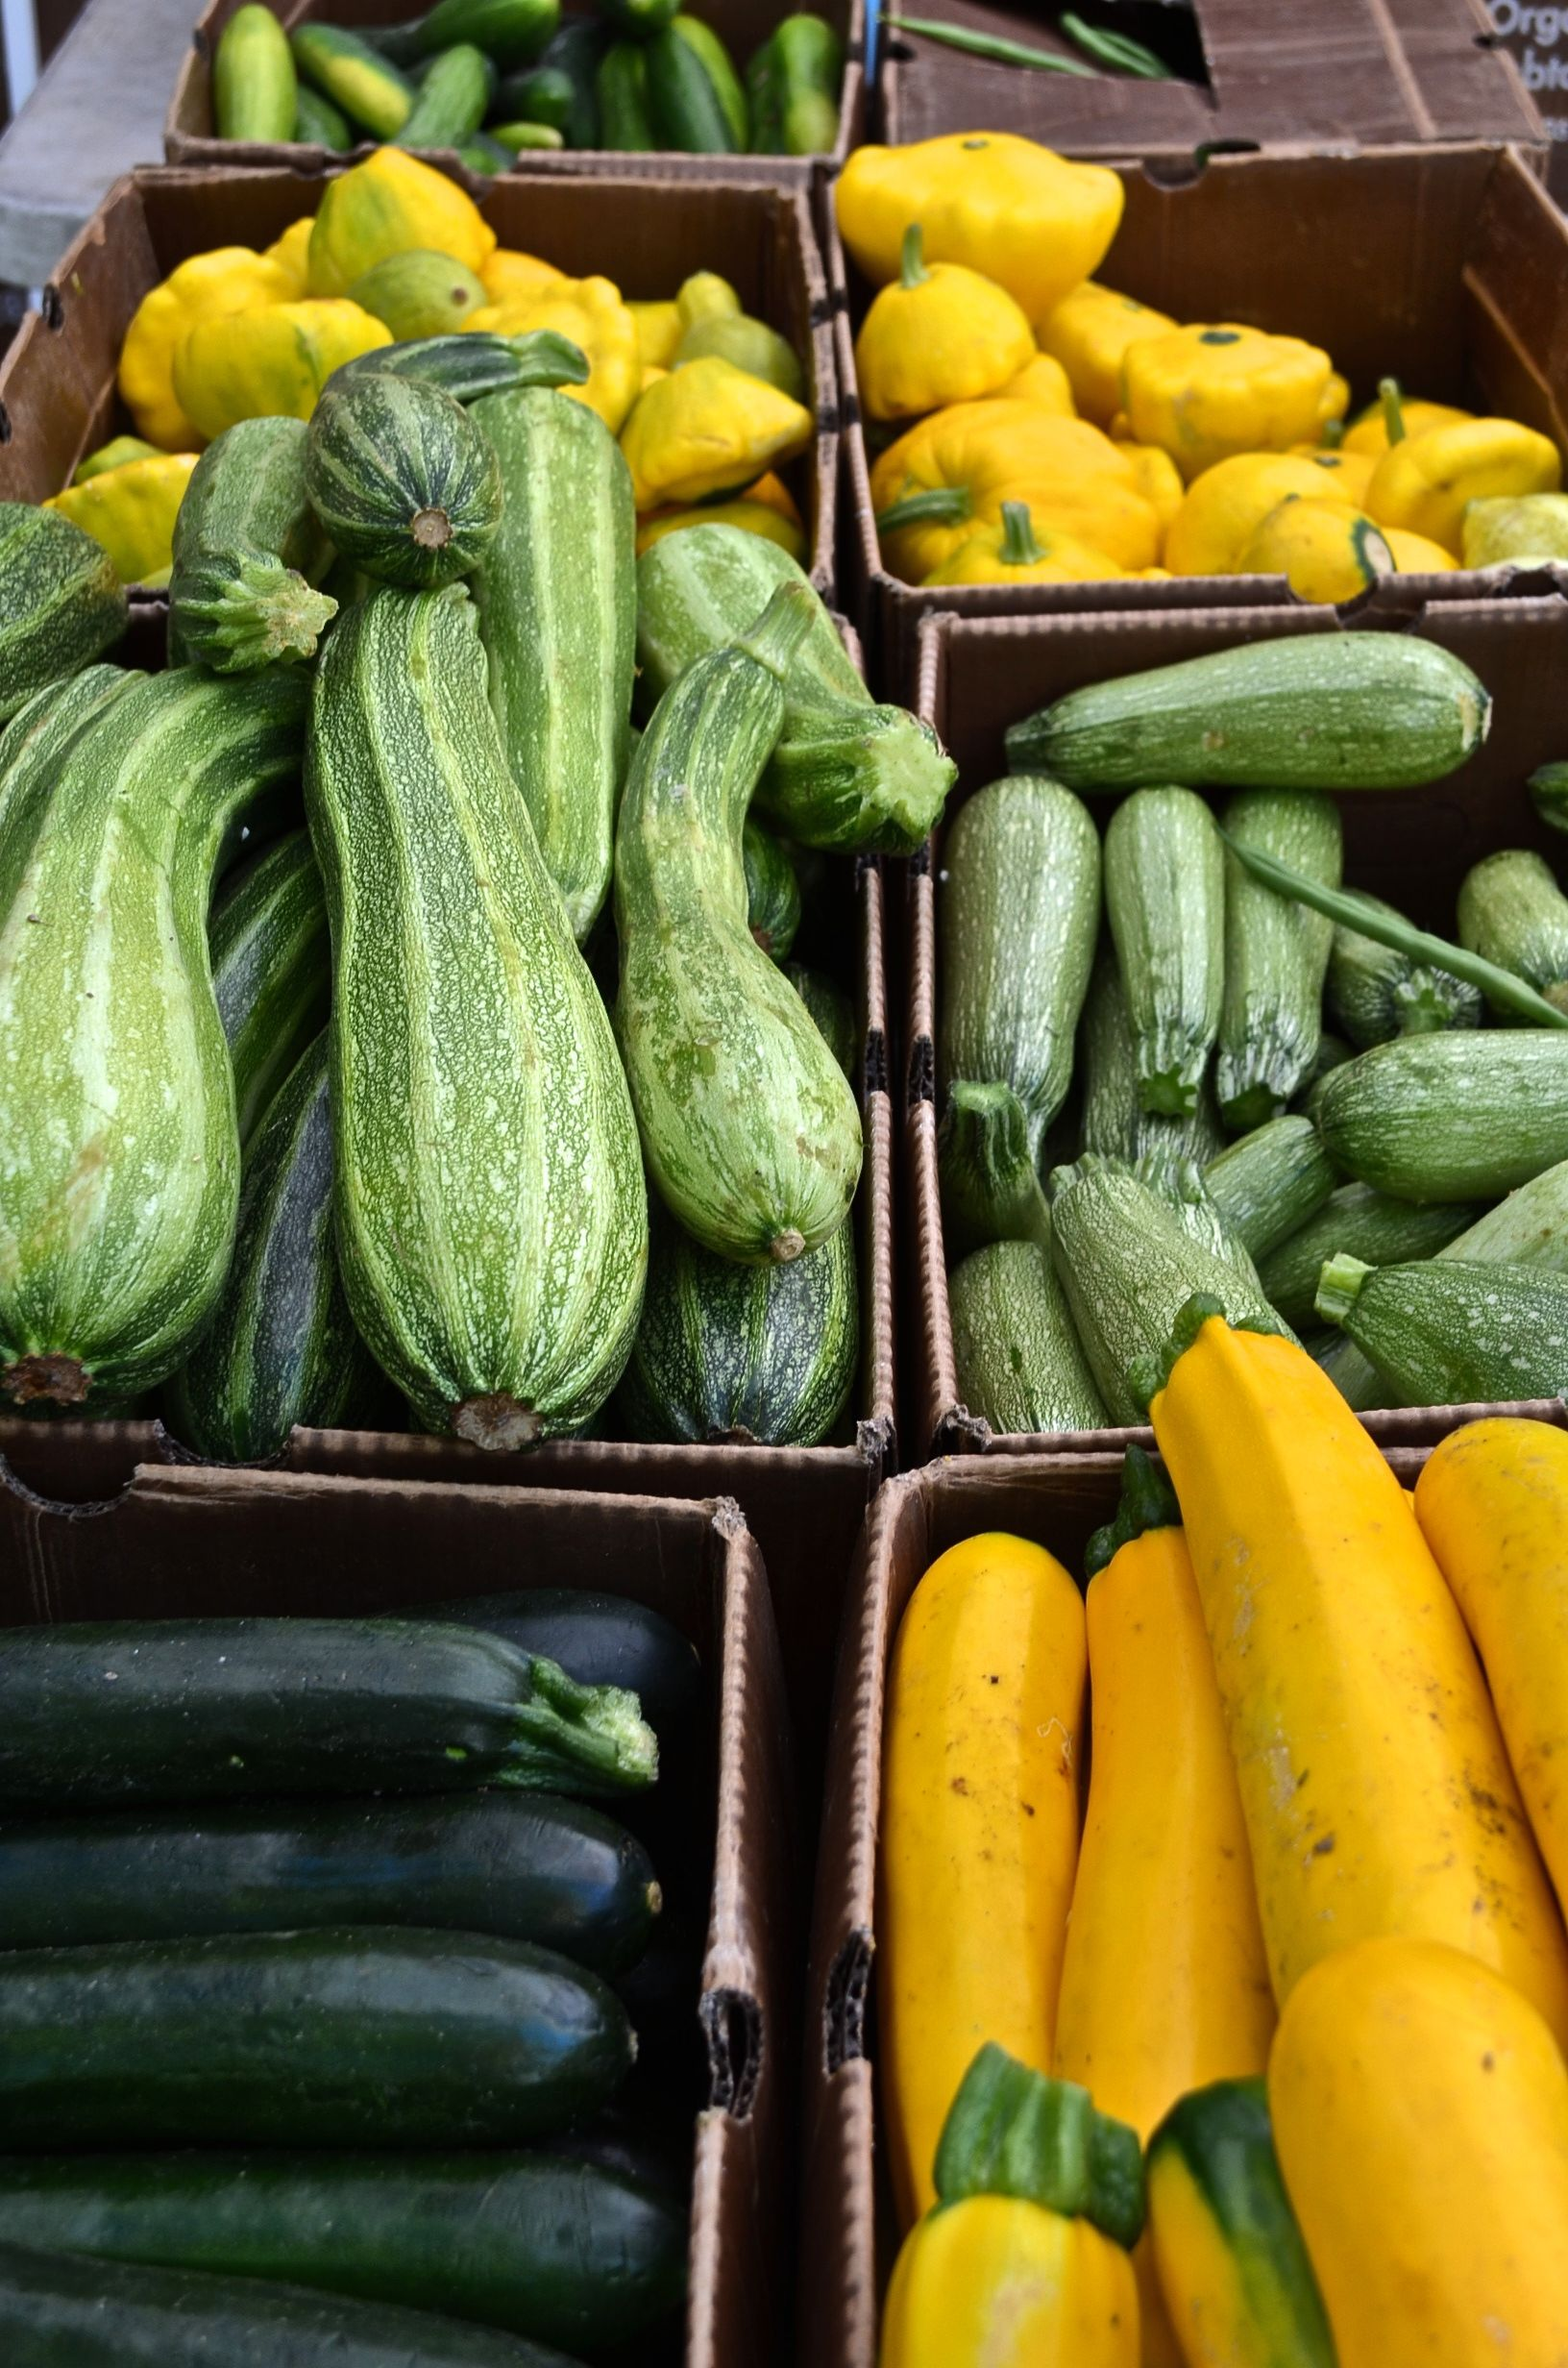 Lovely, colorful zucchini and cucumber. Farmers market